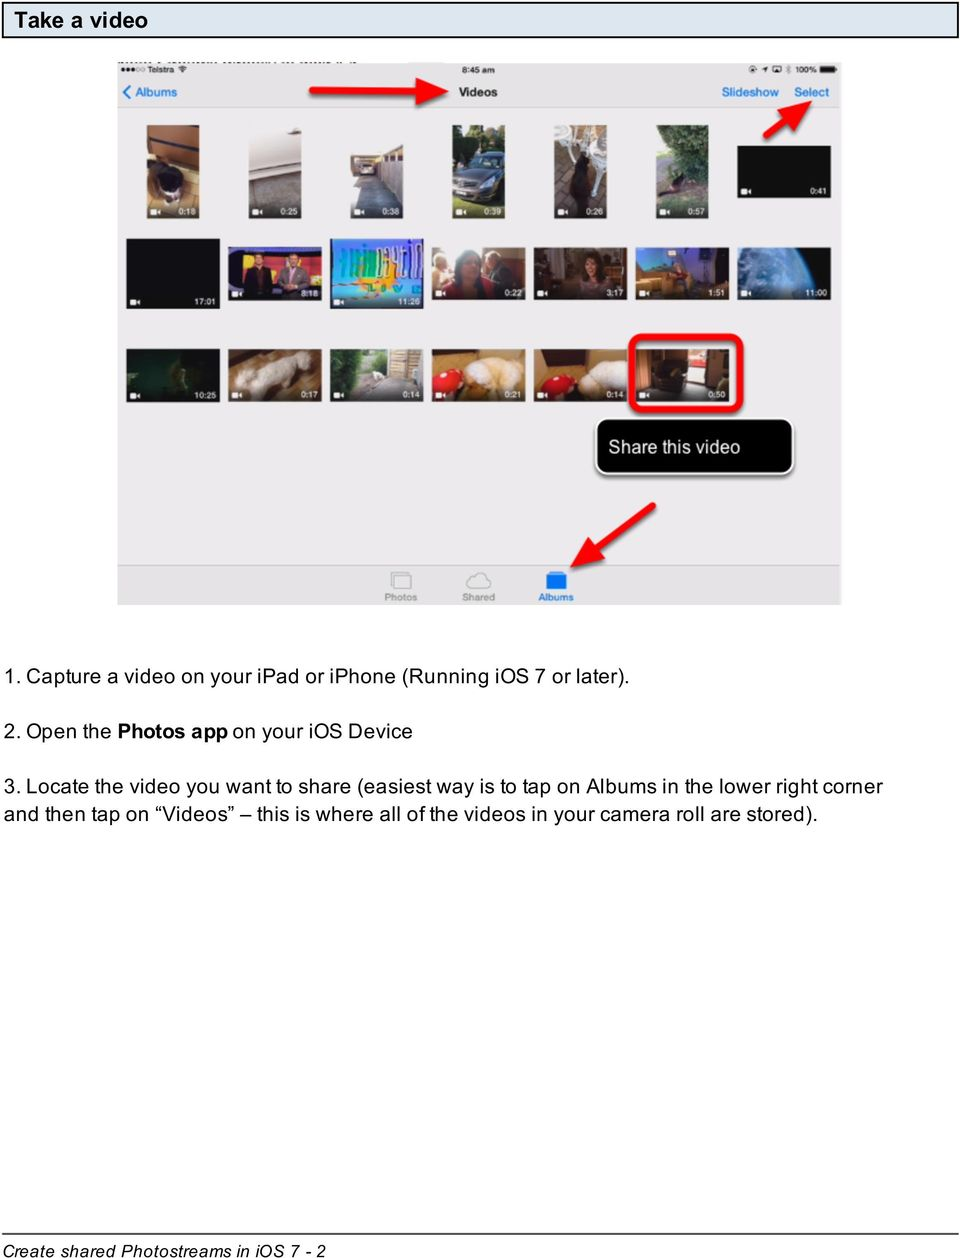 Locate the video you want to share (easiest way is to tap on Albums in the lower right